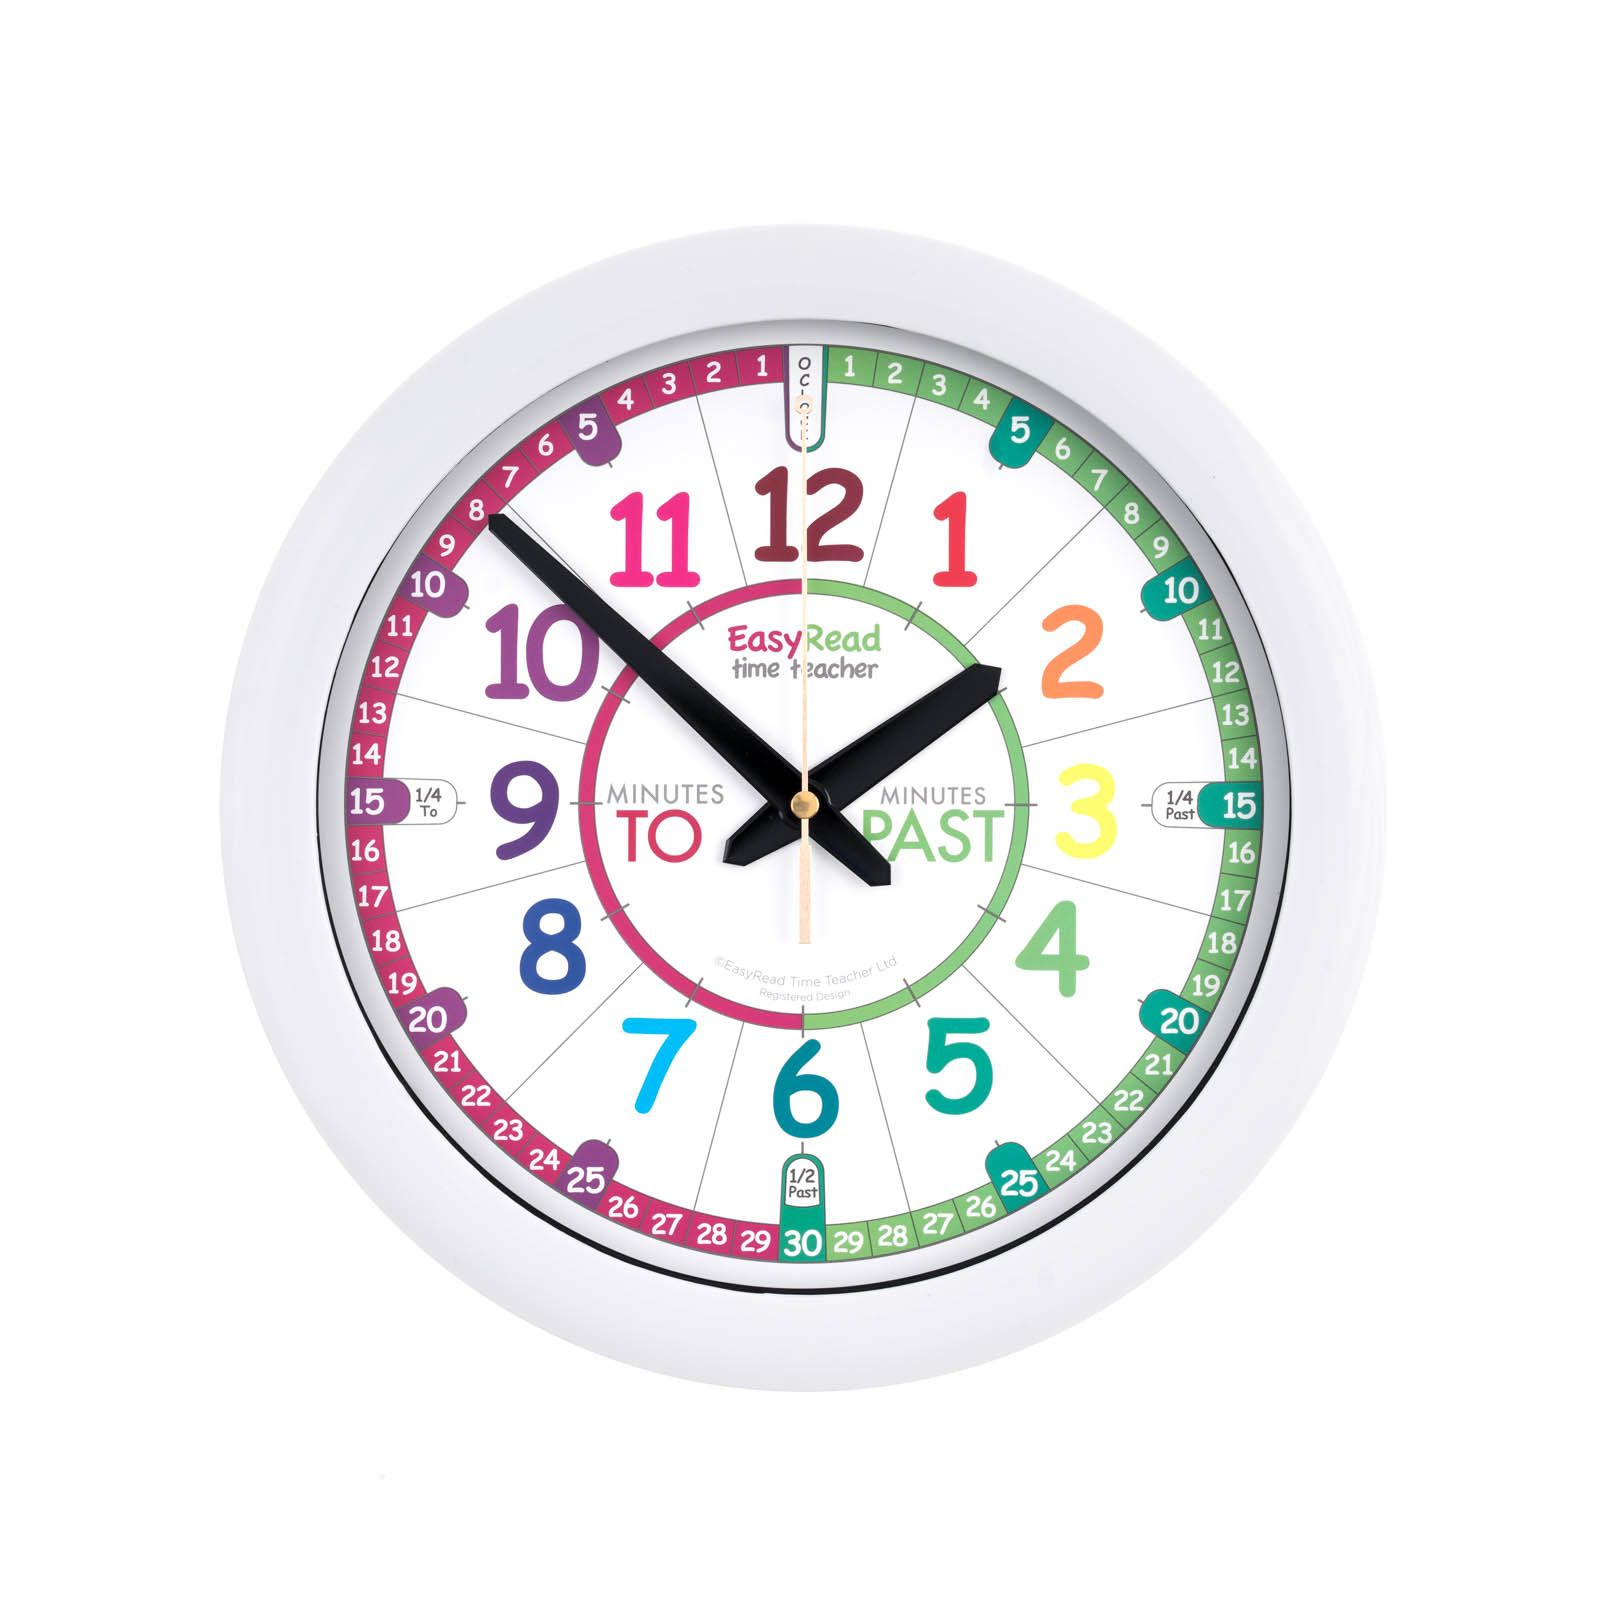 29cm Wall Clocks Childrens Wall Clock Teaching Clock Telling Time